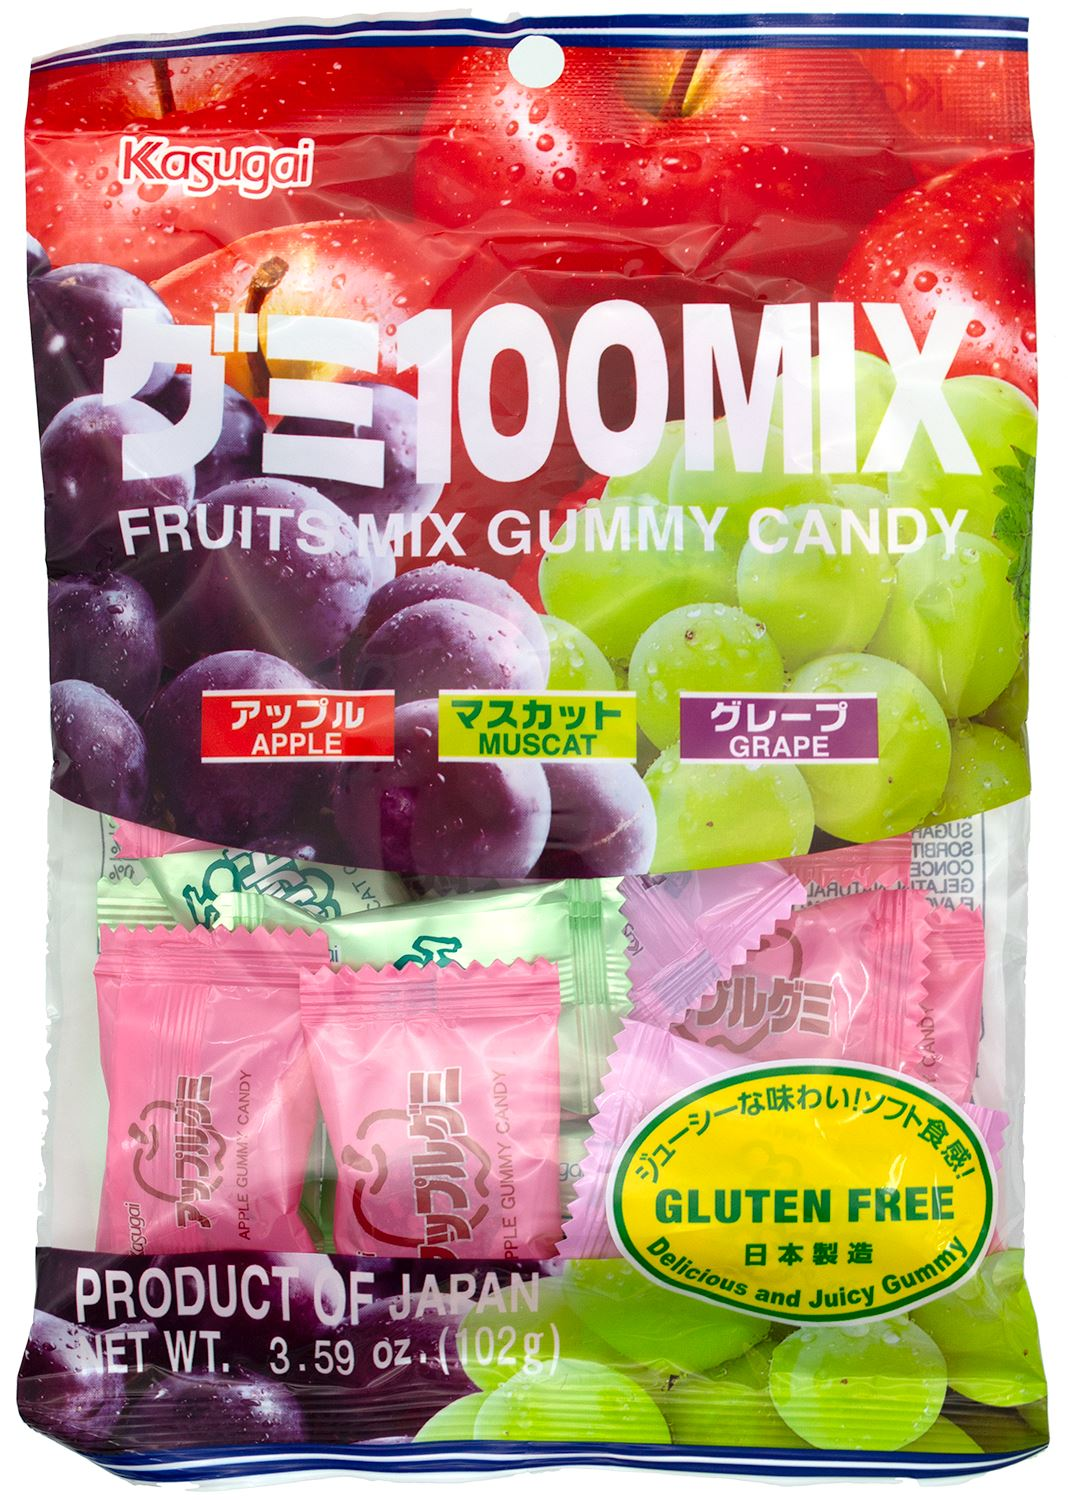 Kasugai Gummy Candy Kasugai Fruit Mix 3.59 Ounce